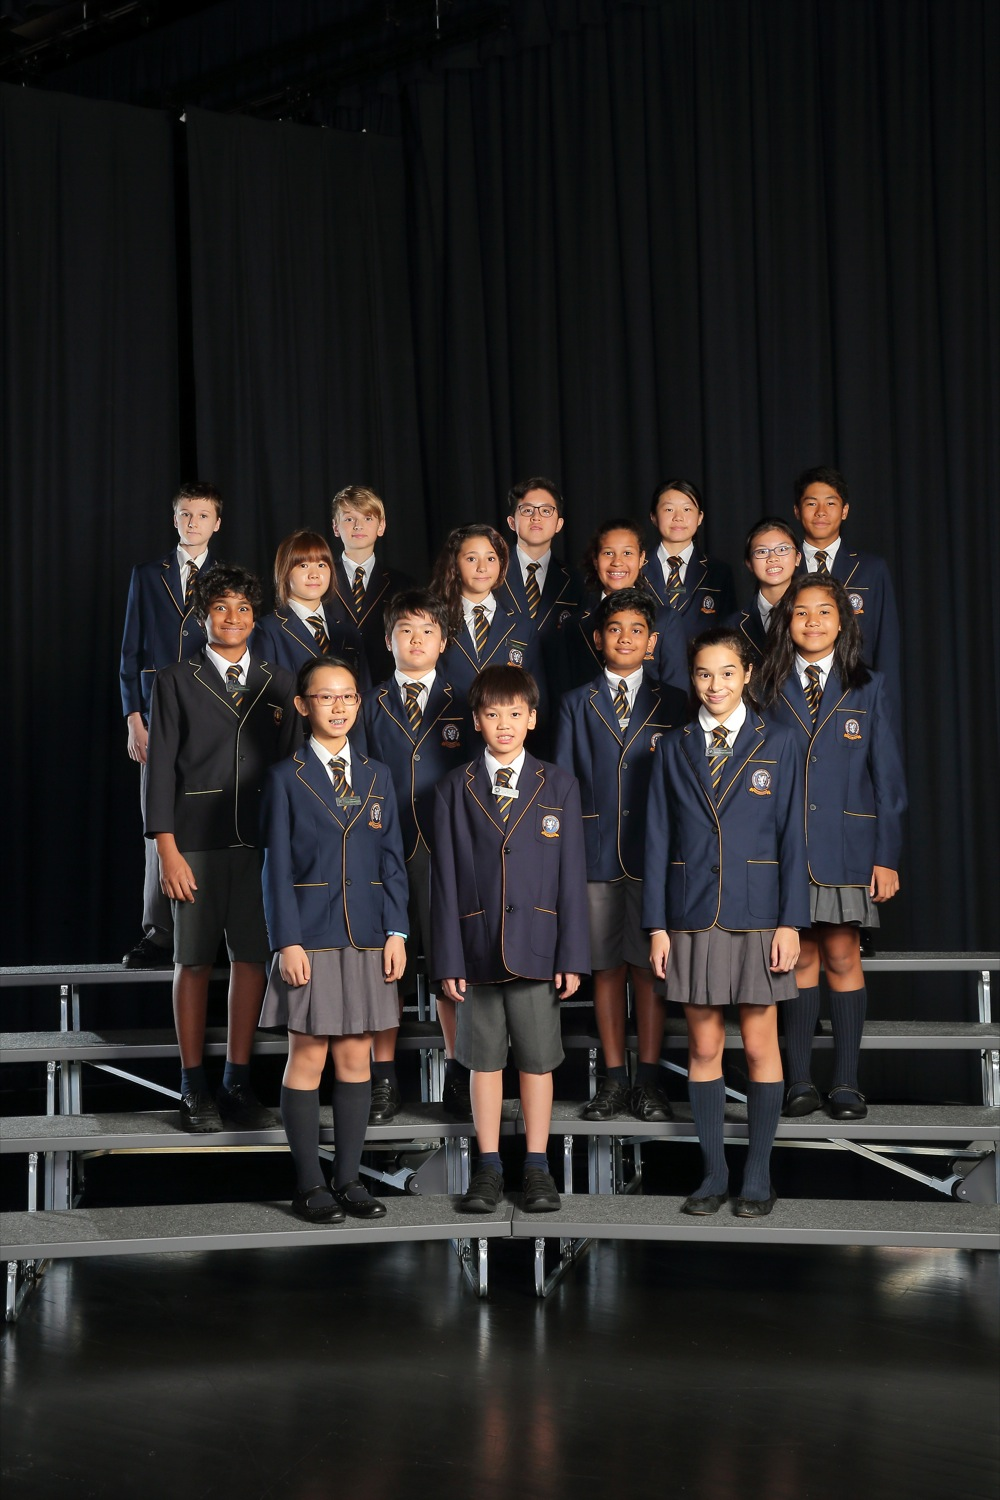 BSKL Student Council and Sports House Photo Shoot